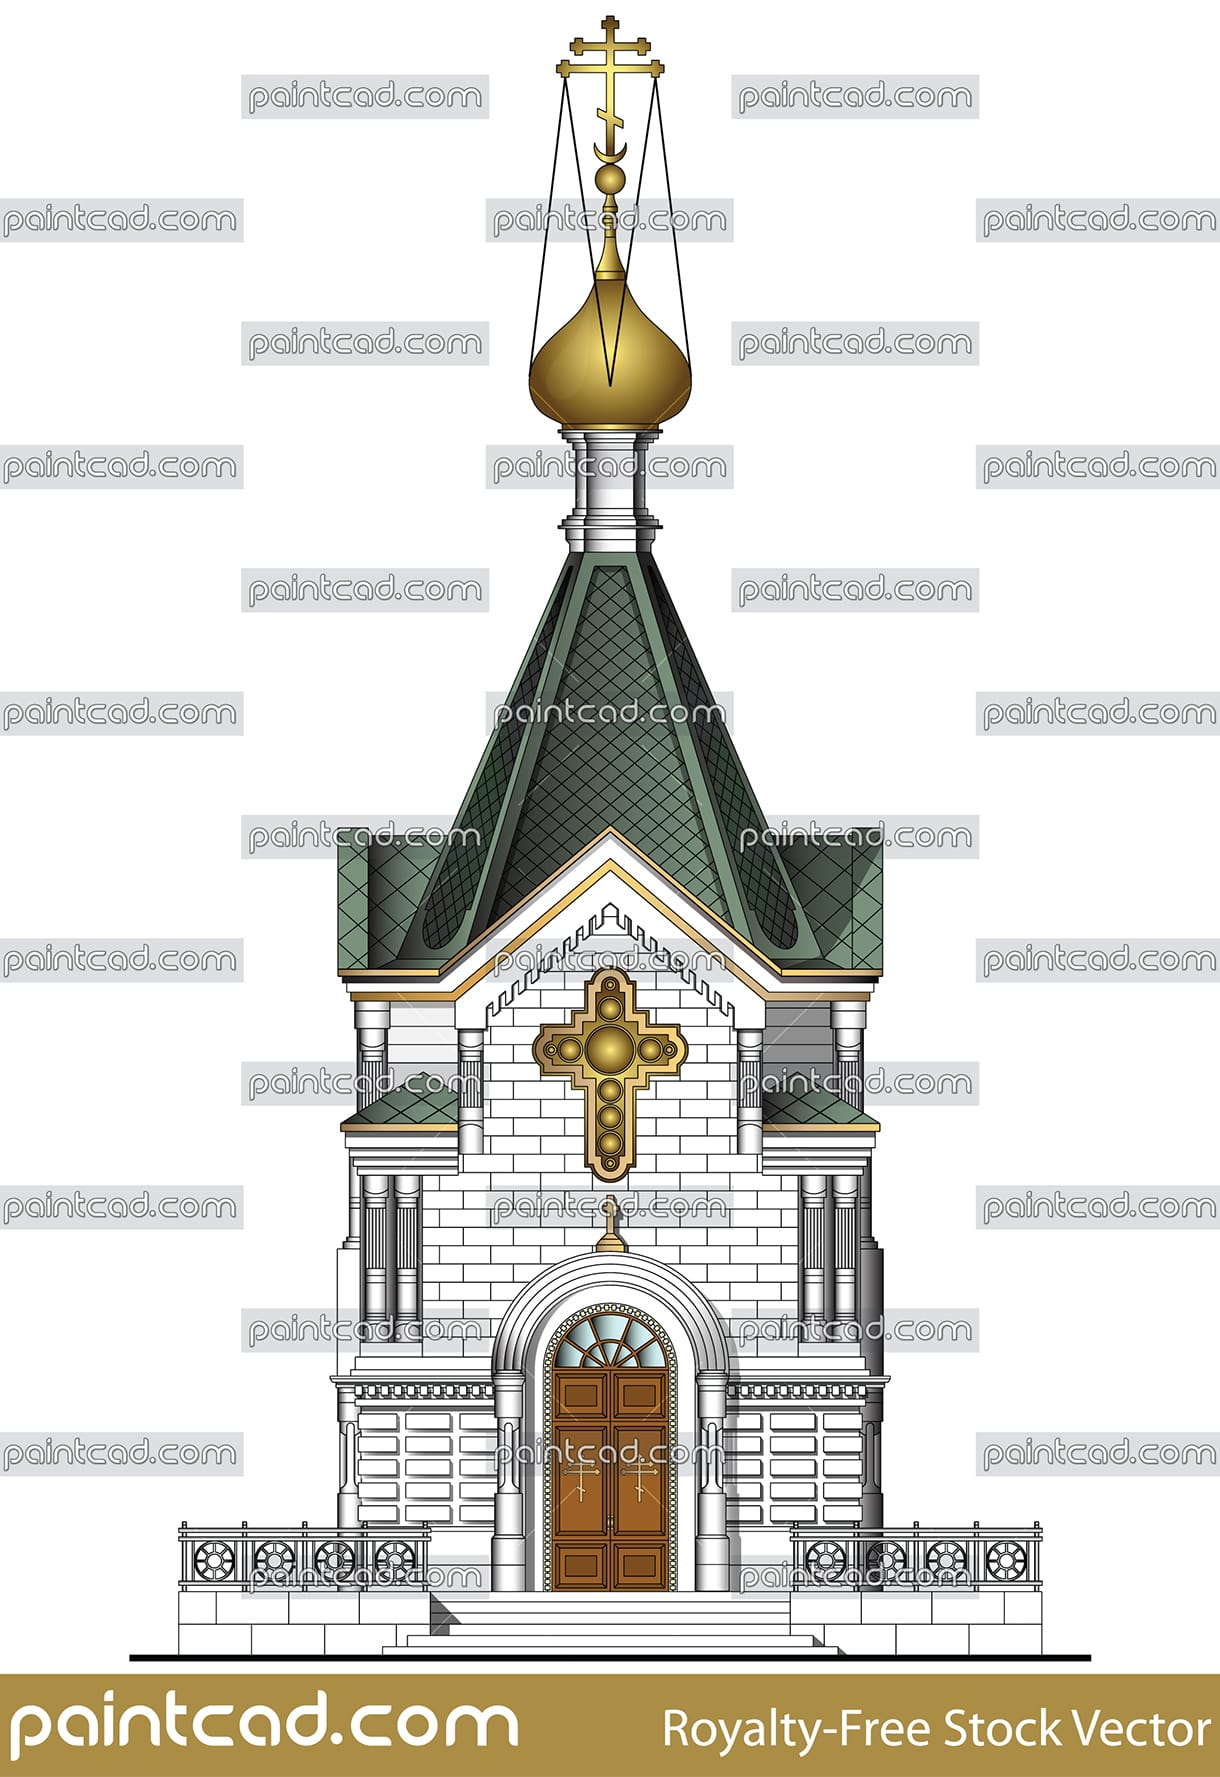 Vector illustration of classic Russian orthodox  temple . Illustrated is the facade of the church main entrance, with a small and huge gold cross above the entrance doors and green roof with shining gold onion dome and over him typical Eastern Orthodox  cross,  with three horizontal crossbeams, known as the Suppedaneum cross. The building is white with entrance steps and metal railing.